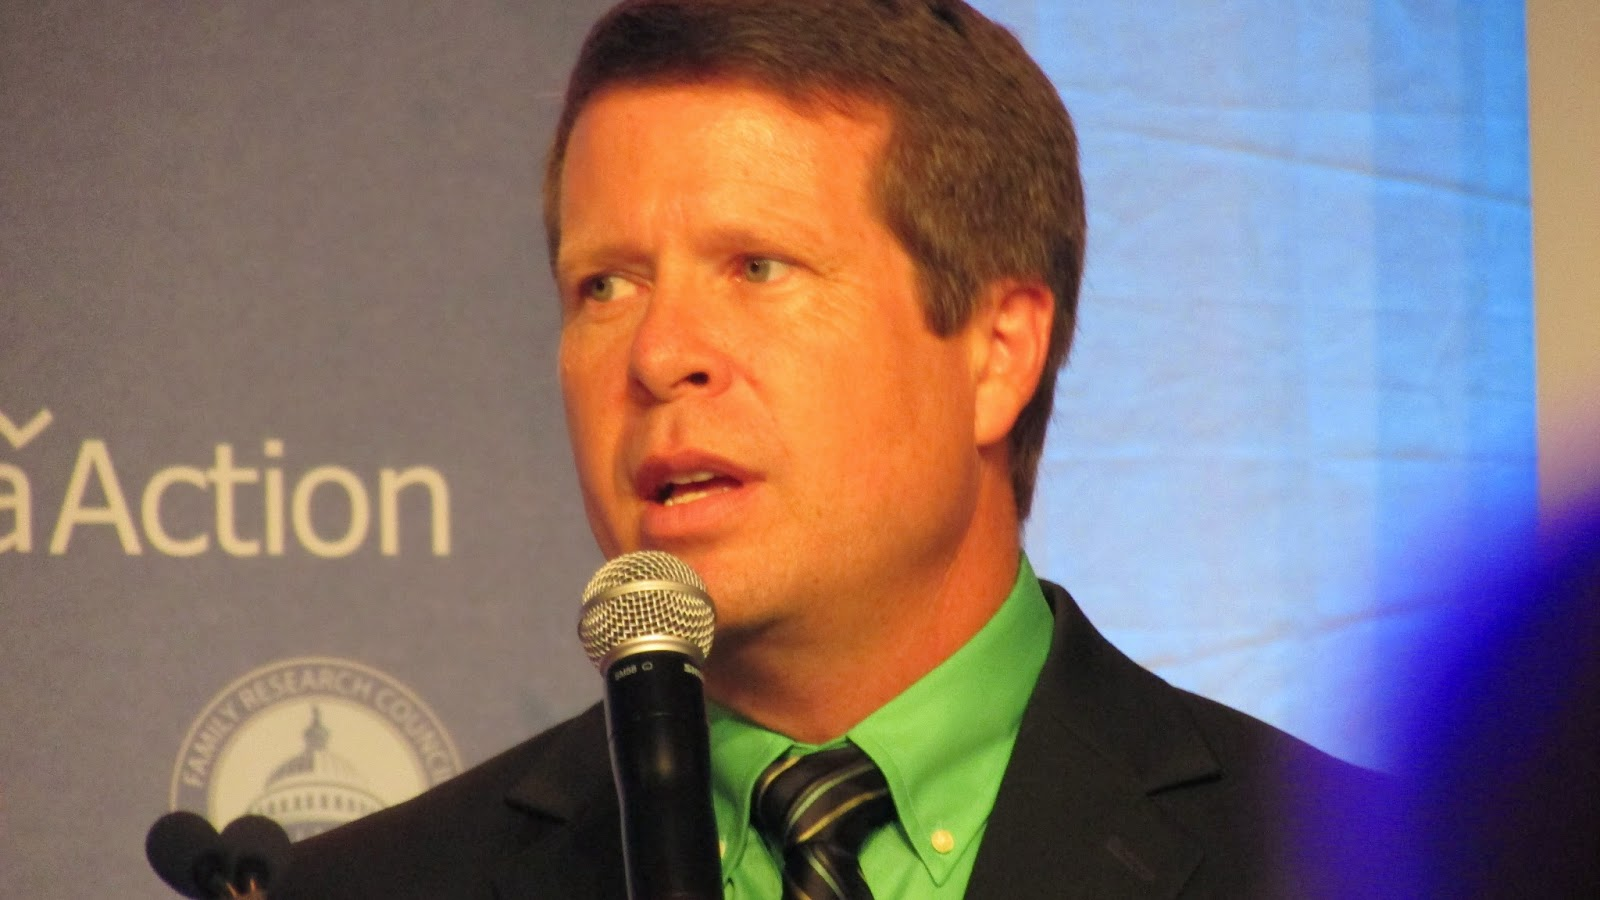 Jim Bob Duggar Pictures